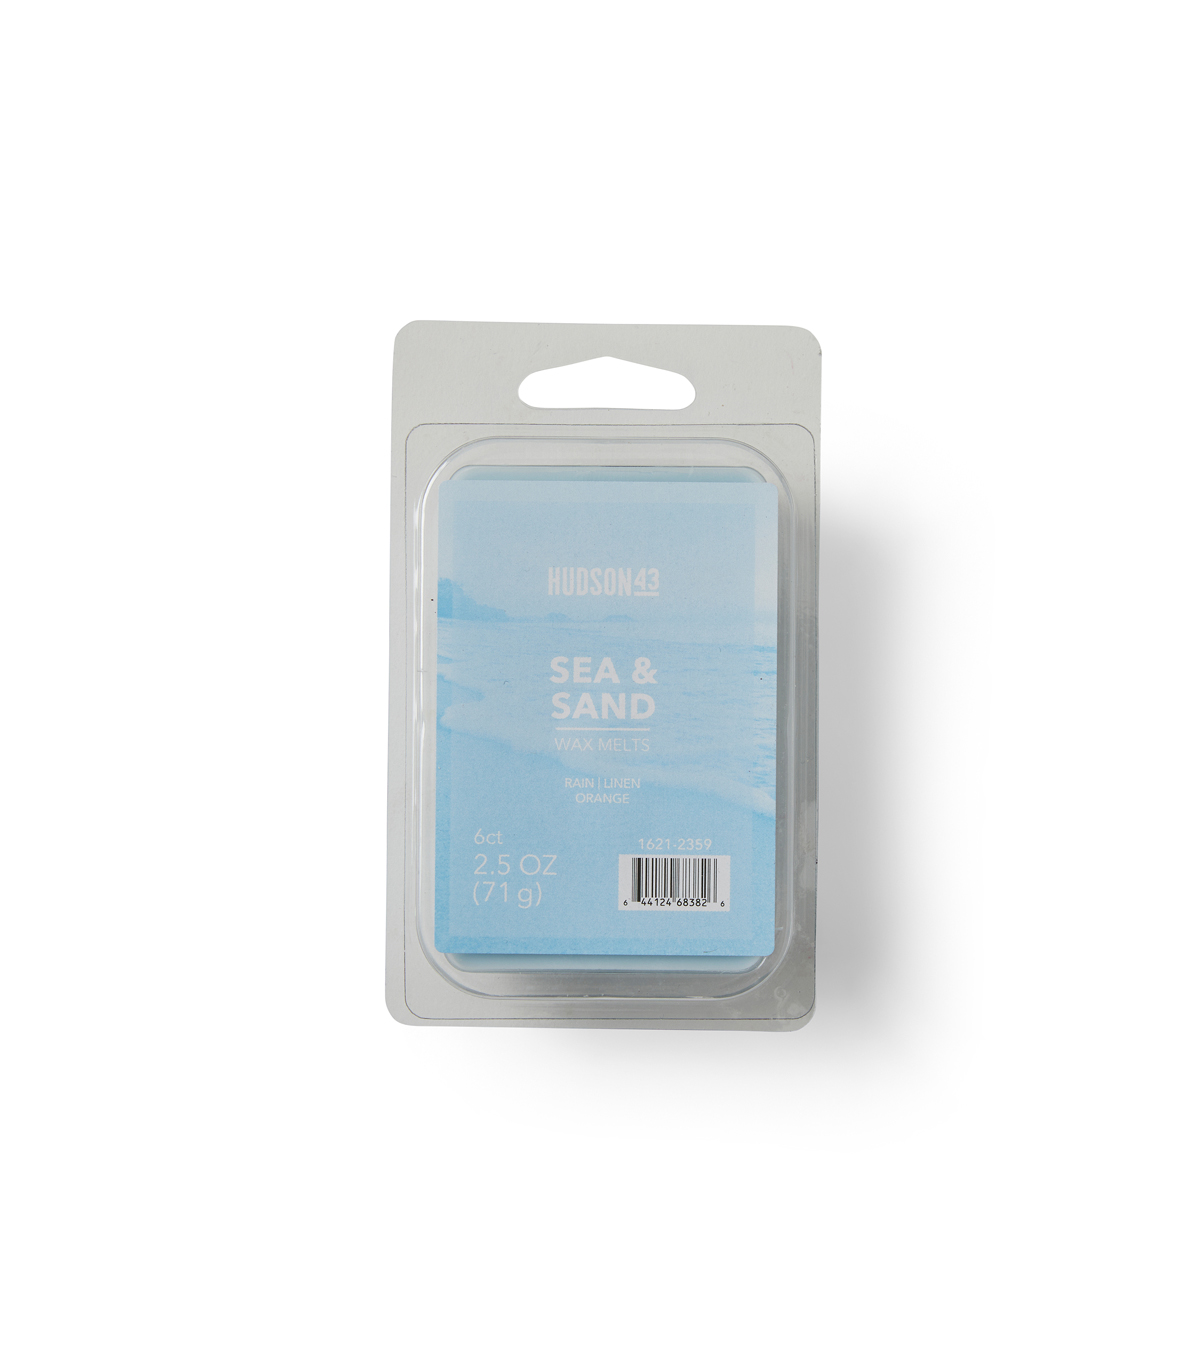 Hudson 43 Candle & Light 6 pk Sea & Sand Wax Melts